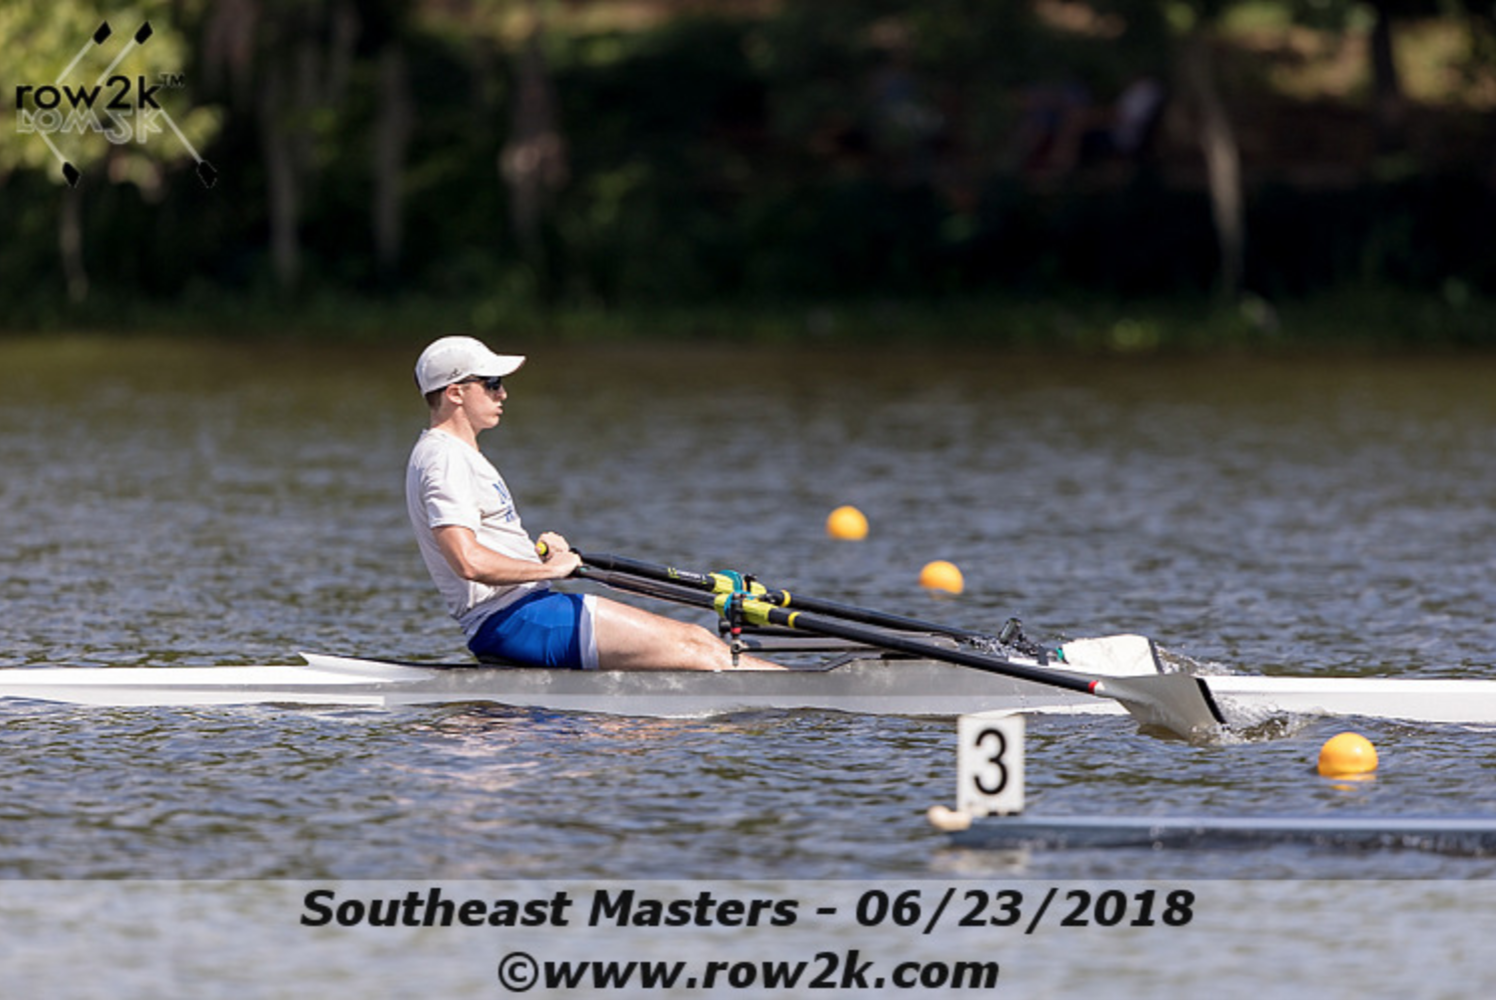 Nickels '20 on his way to winning the USRowing Southeast Masters Championships. Photo copyright Row2k.